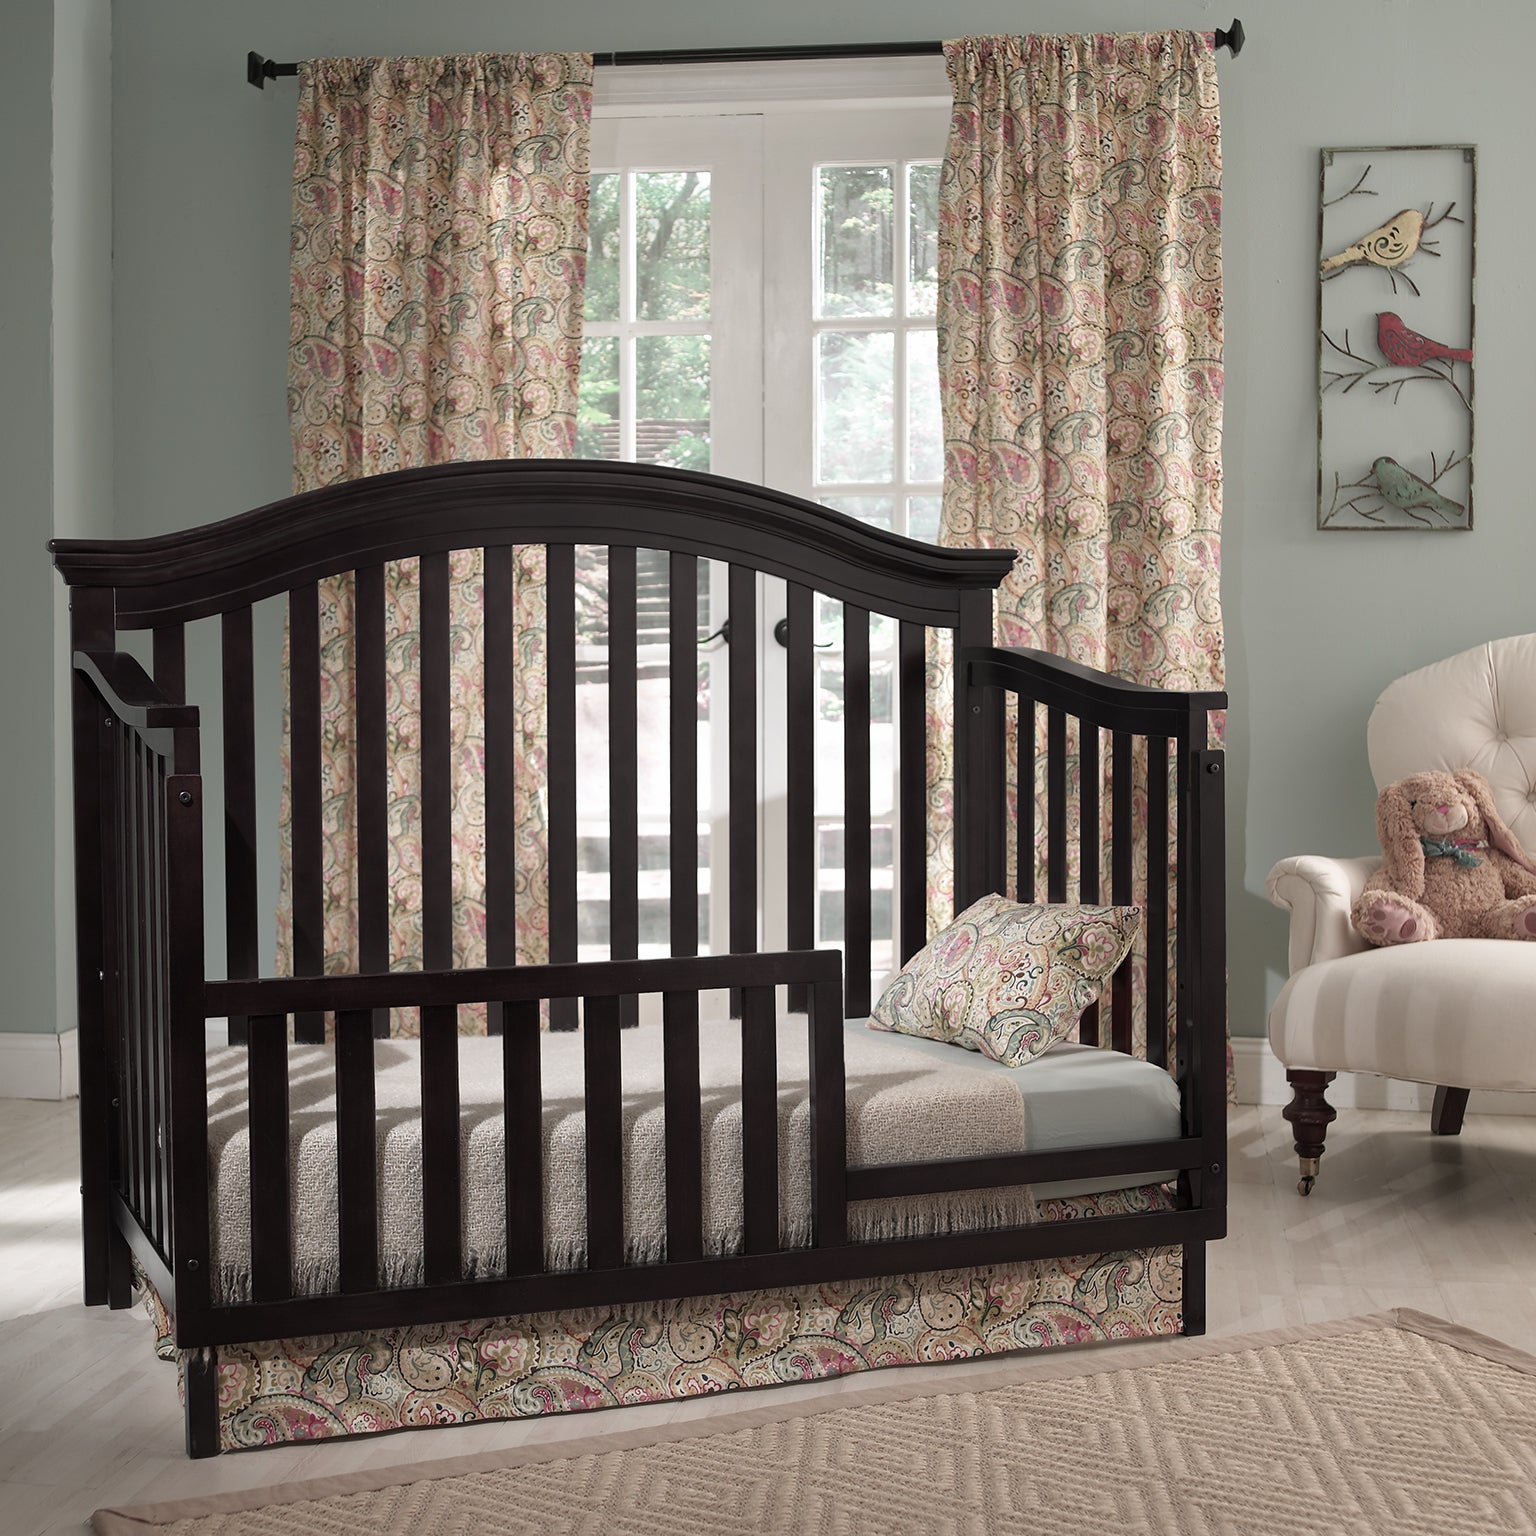 Munire Rhapsody Lifetime 4 In 1 Crib